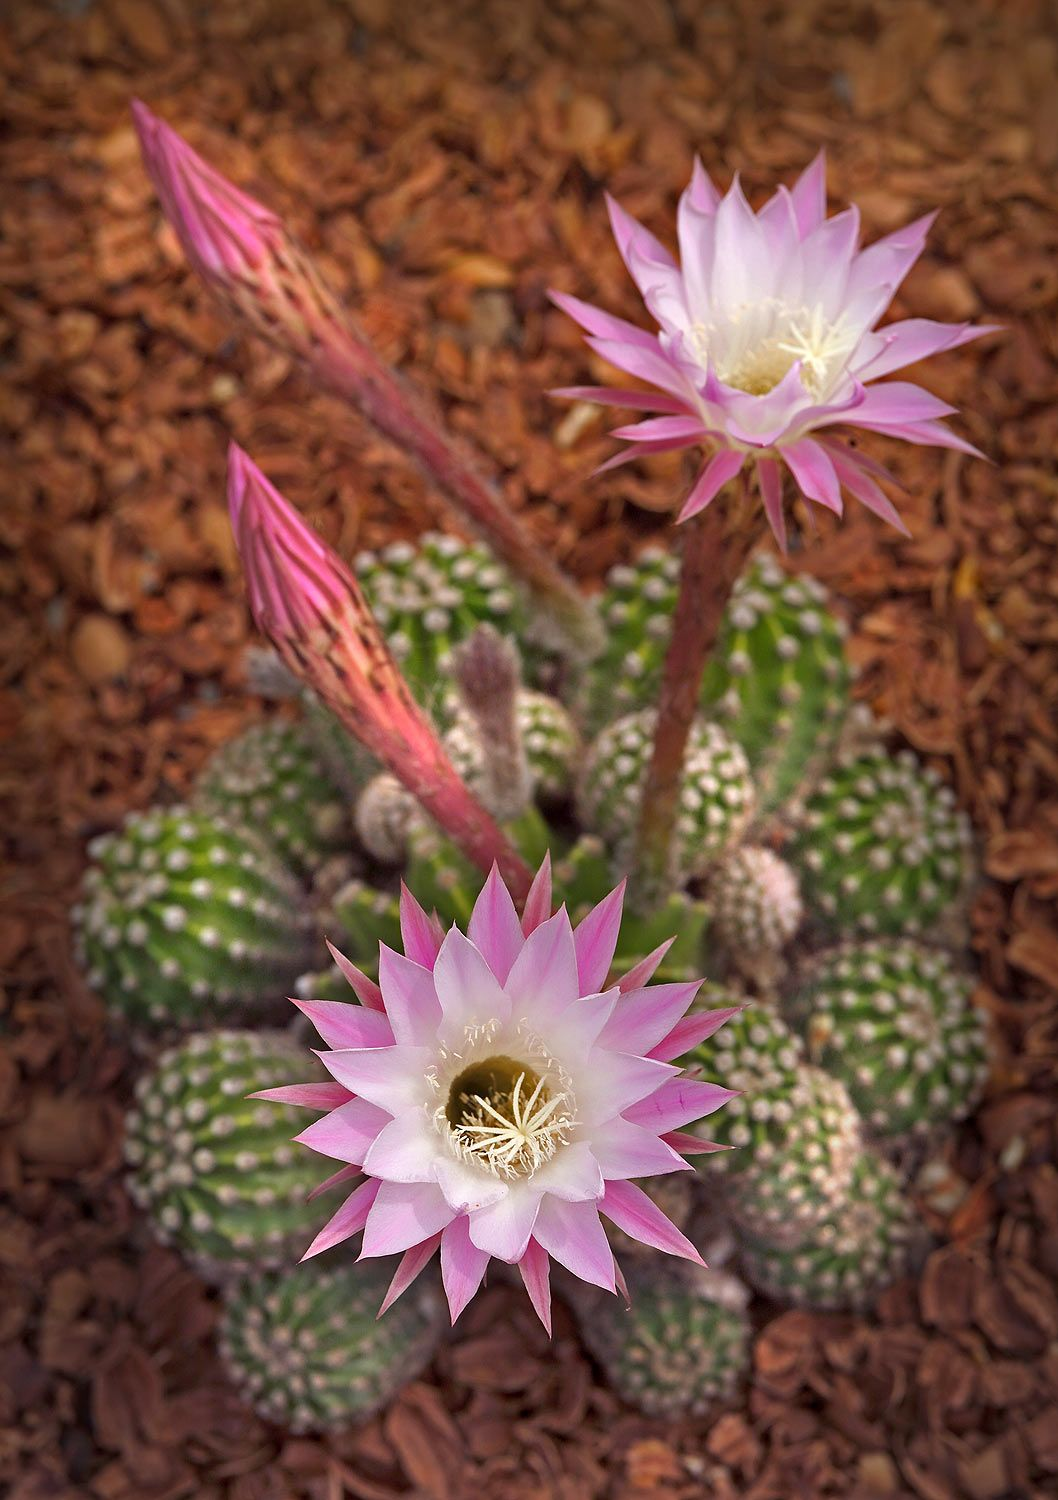 Easter Lily Cactus Hardy To Zone 8 Very Small Cactus Full Sun